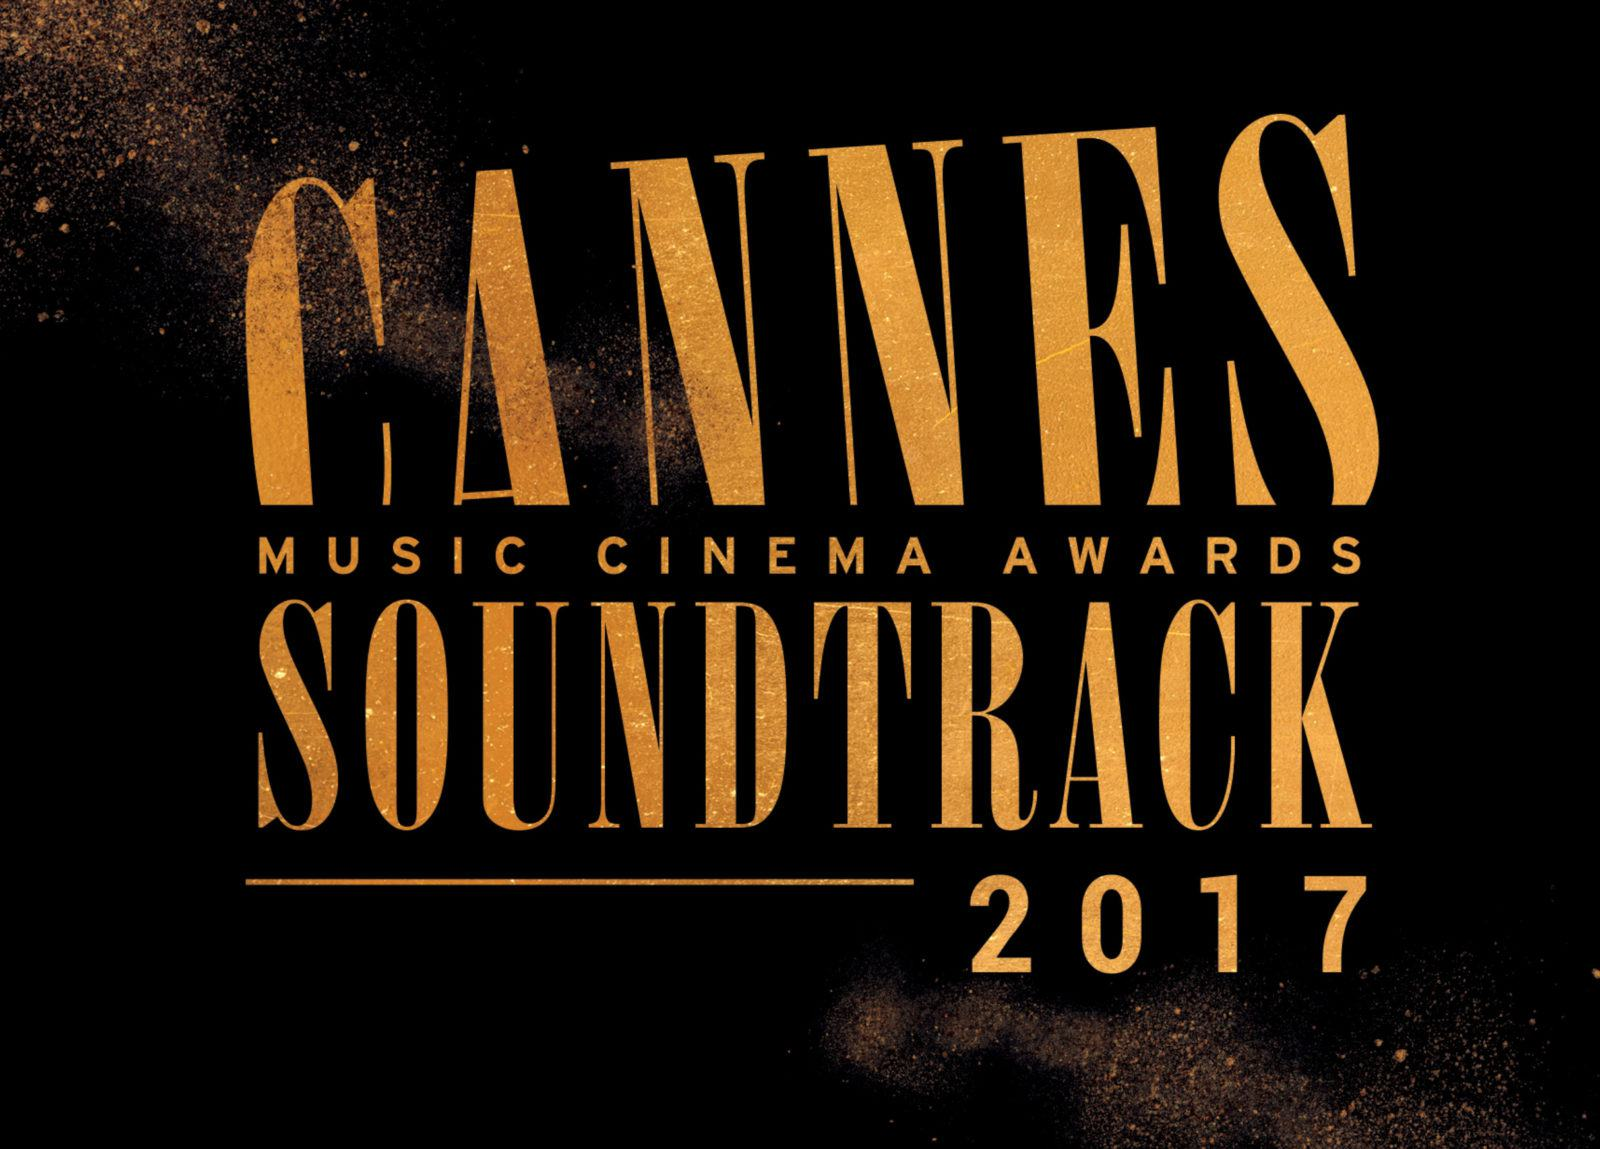 Cannes Soundtrack Awards 2017